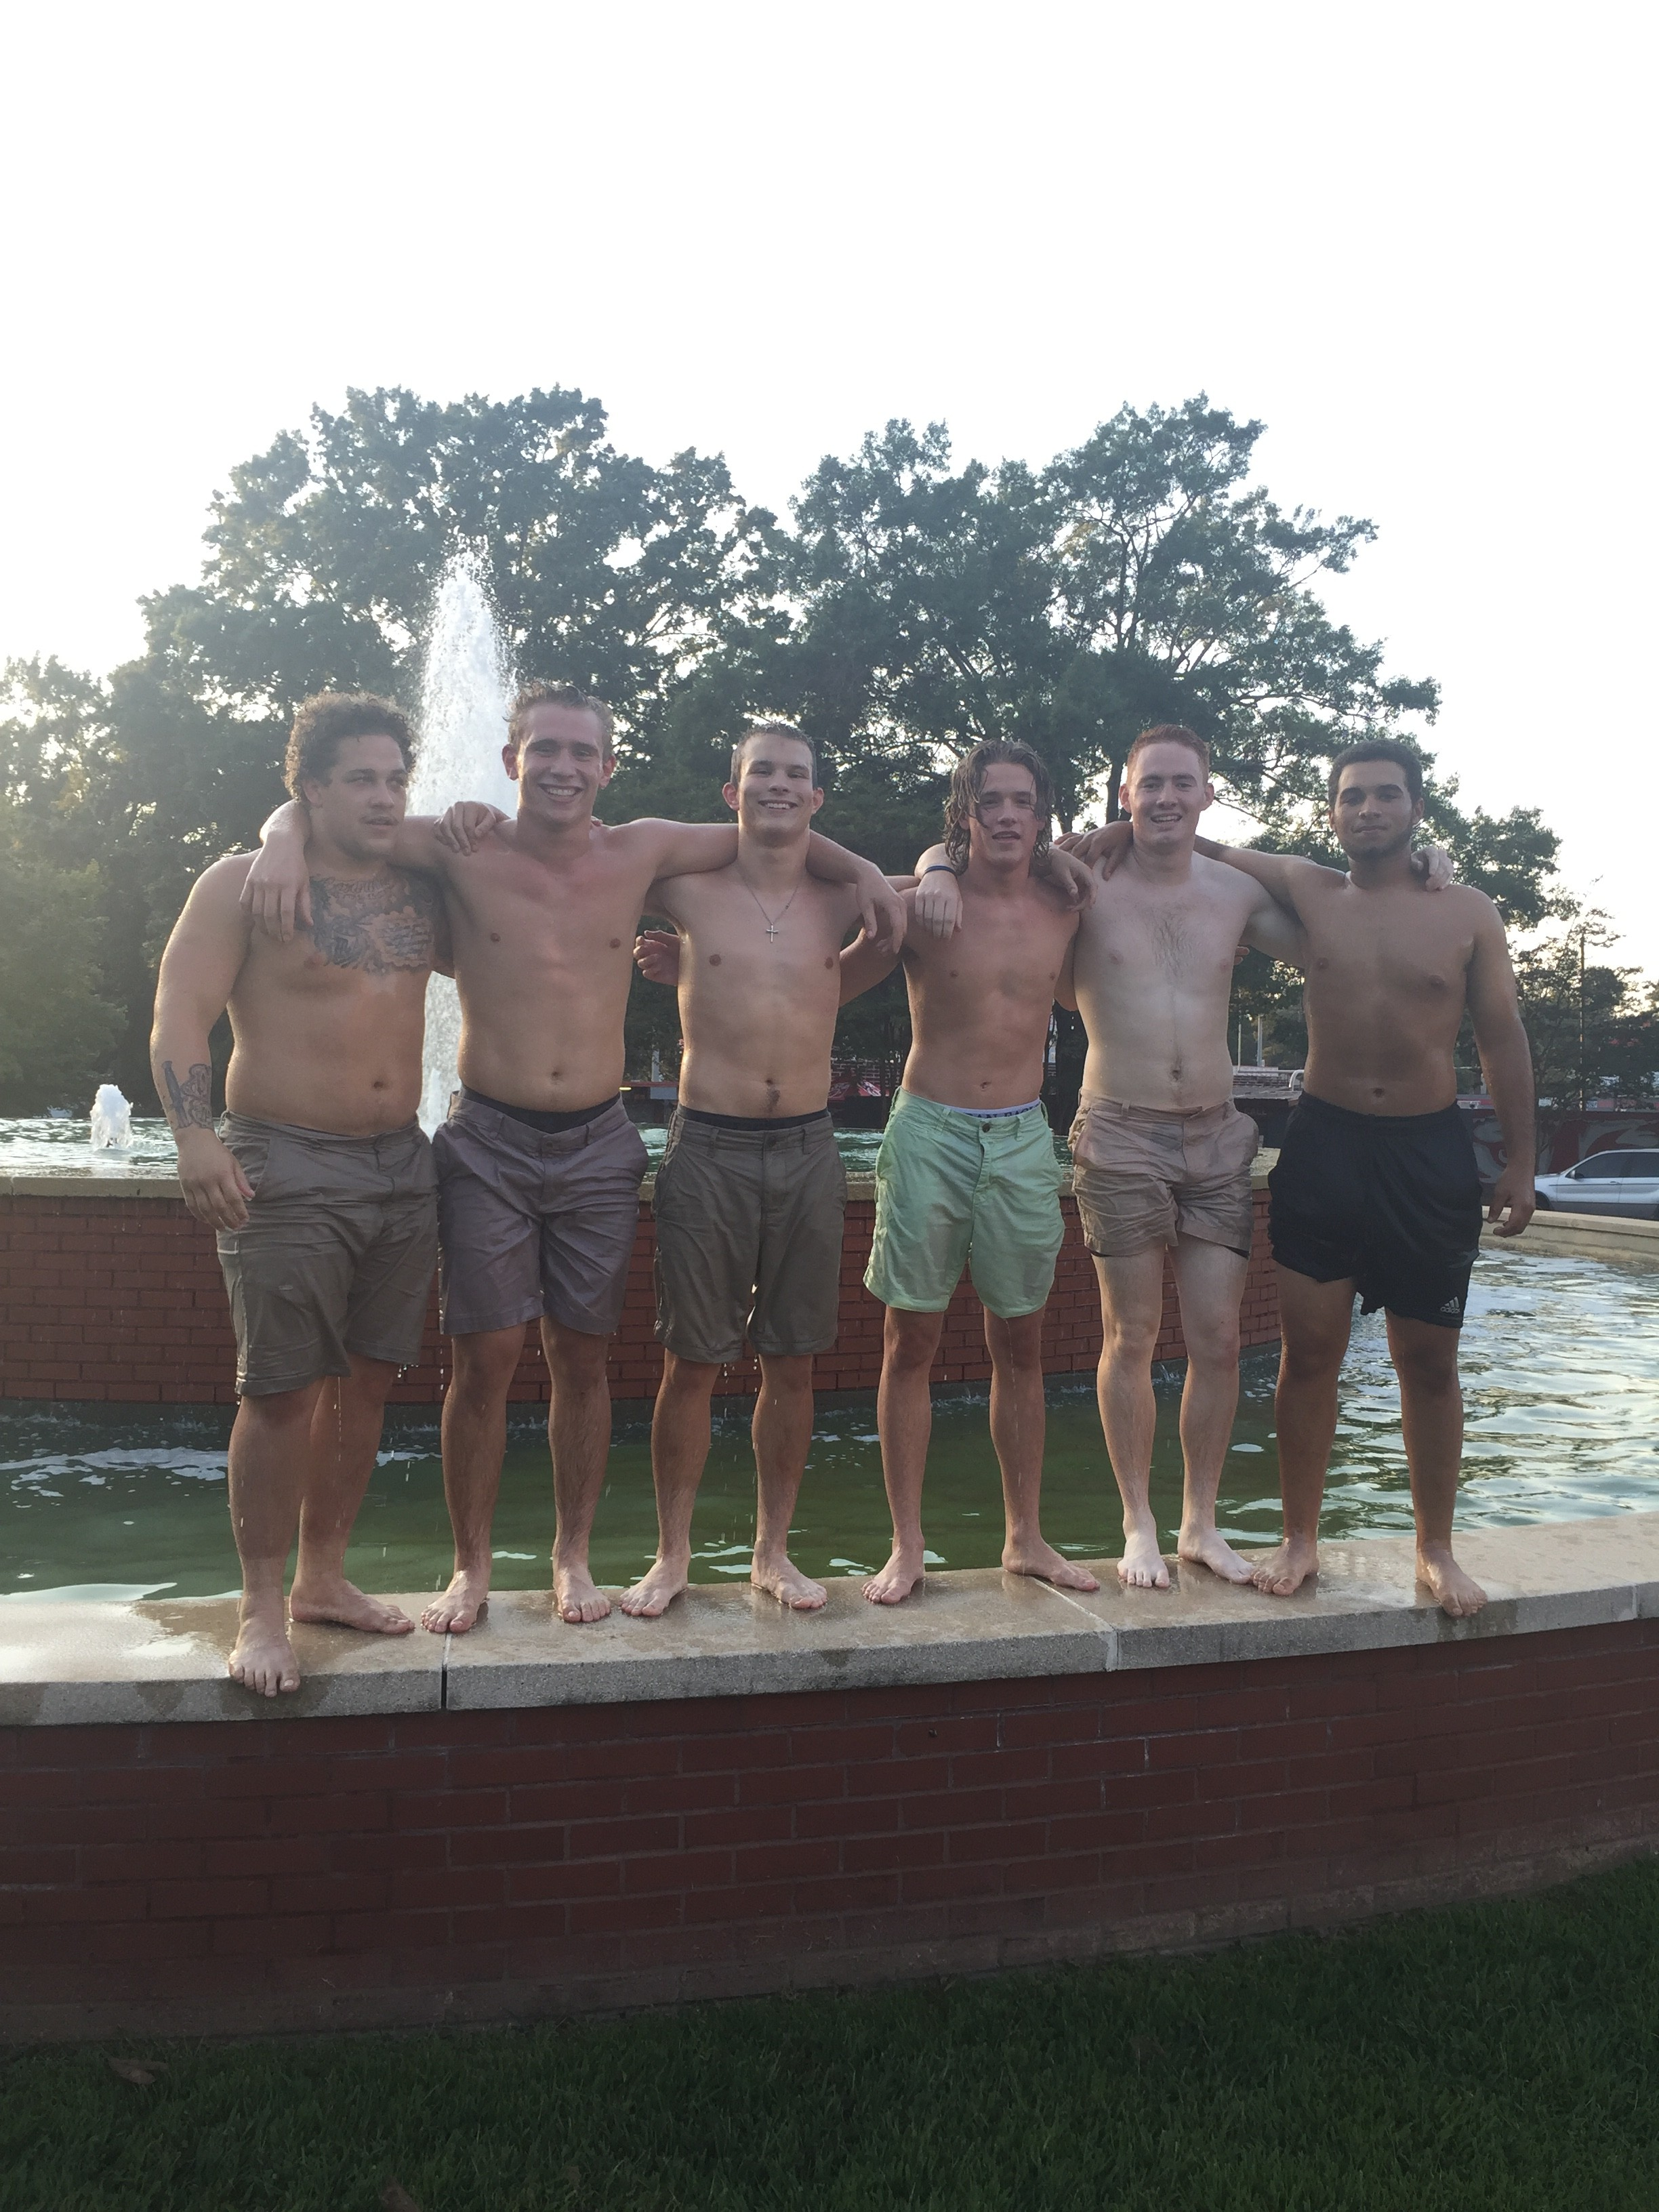 Fall RUSH see 7 potential Brothers for Delta Epsilon